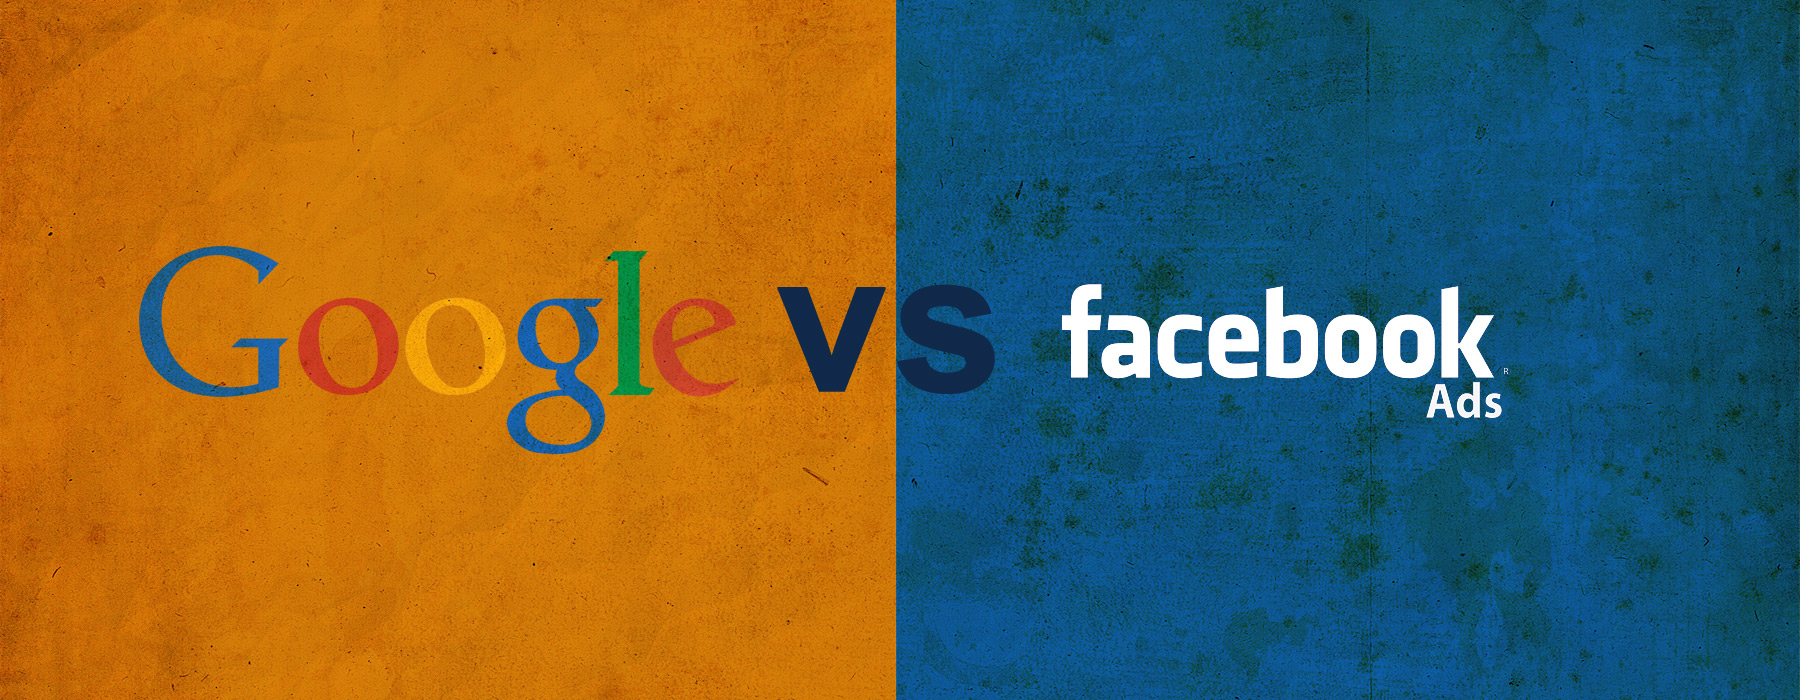 google-vs-fb